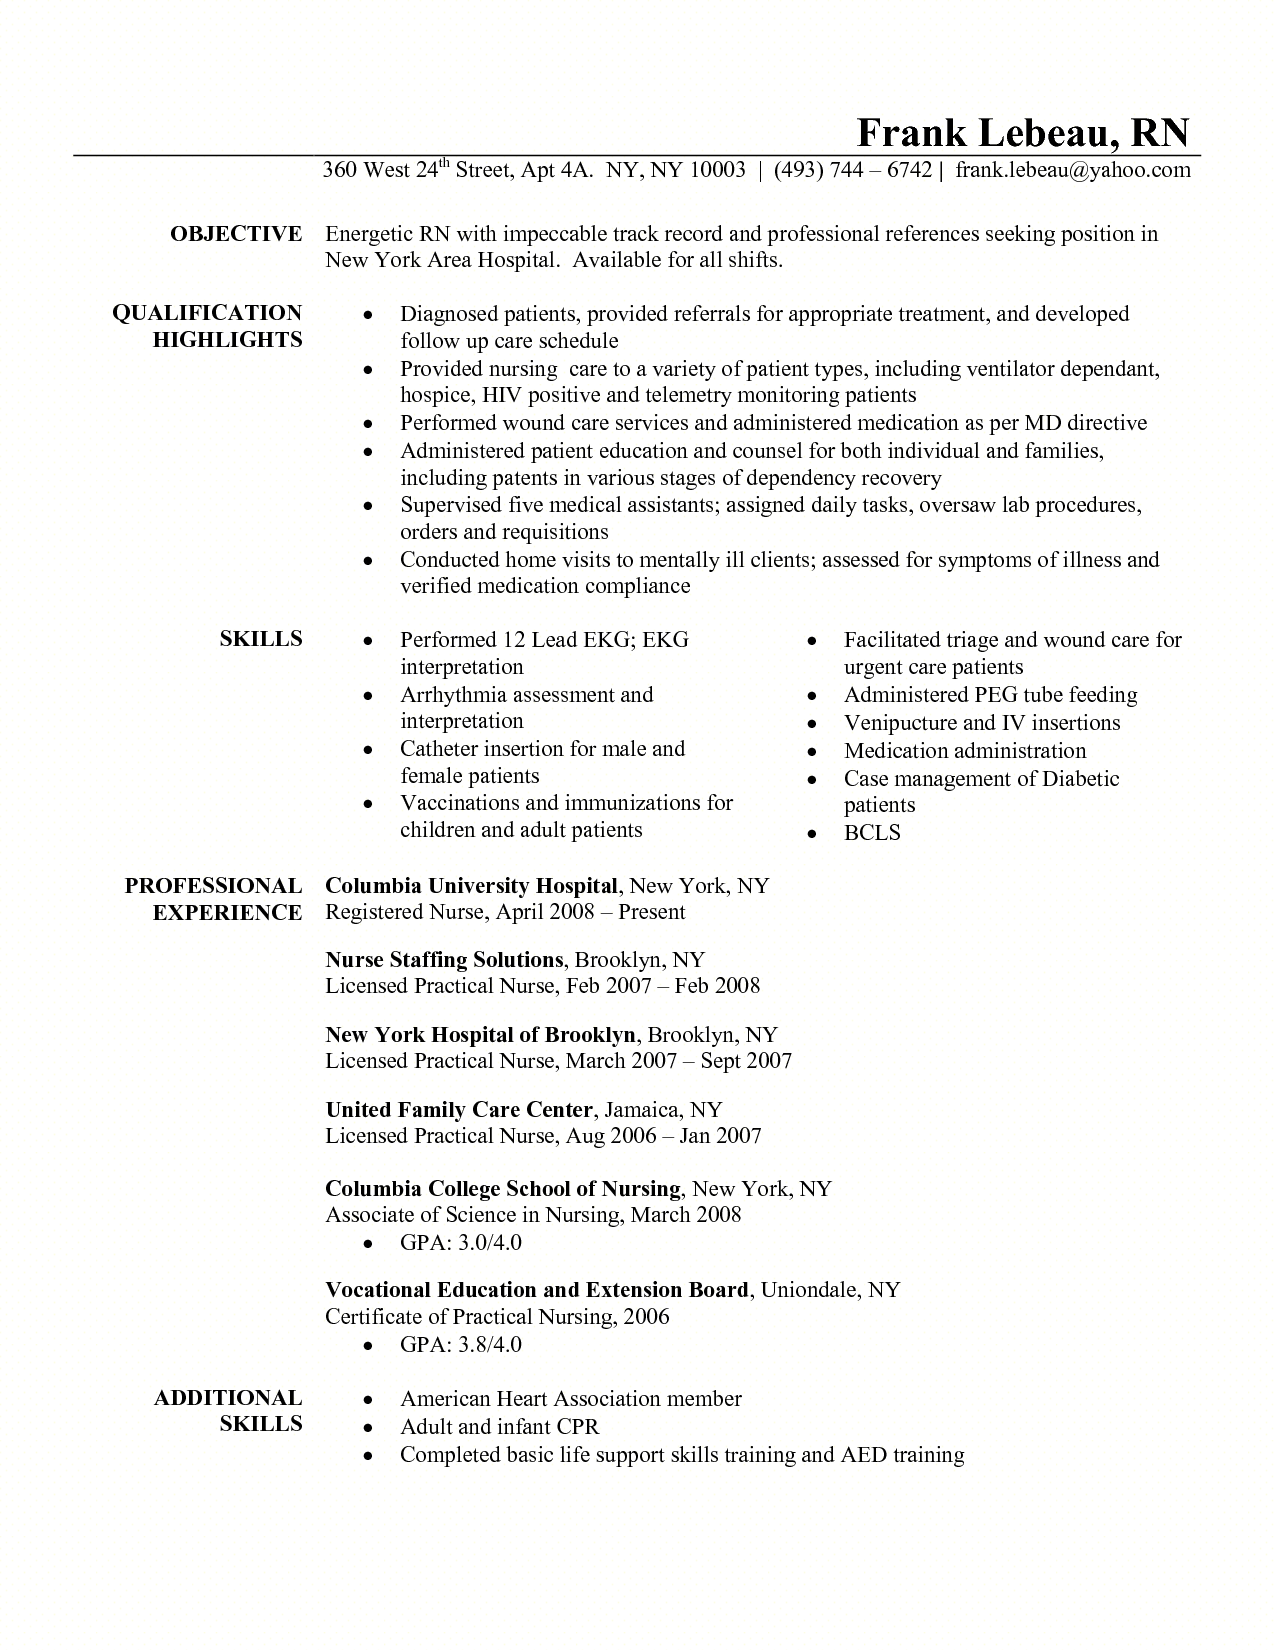 sample new rn resume - Nurse Resume Tips